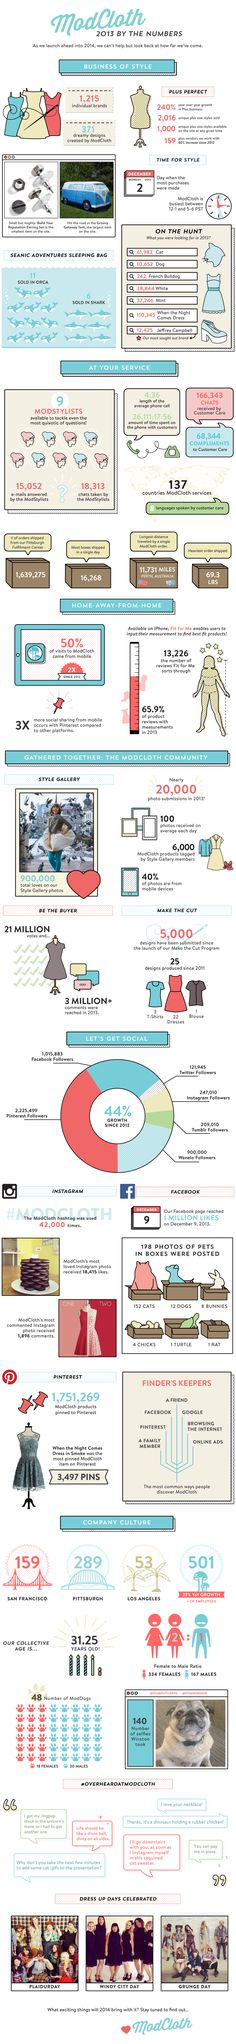 Modcloth 2013 By The Numbers   #Infographic #Clothing #Fashion